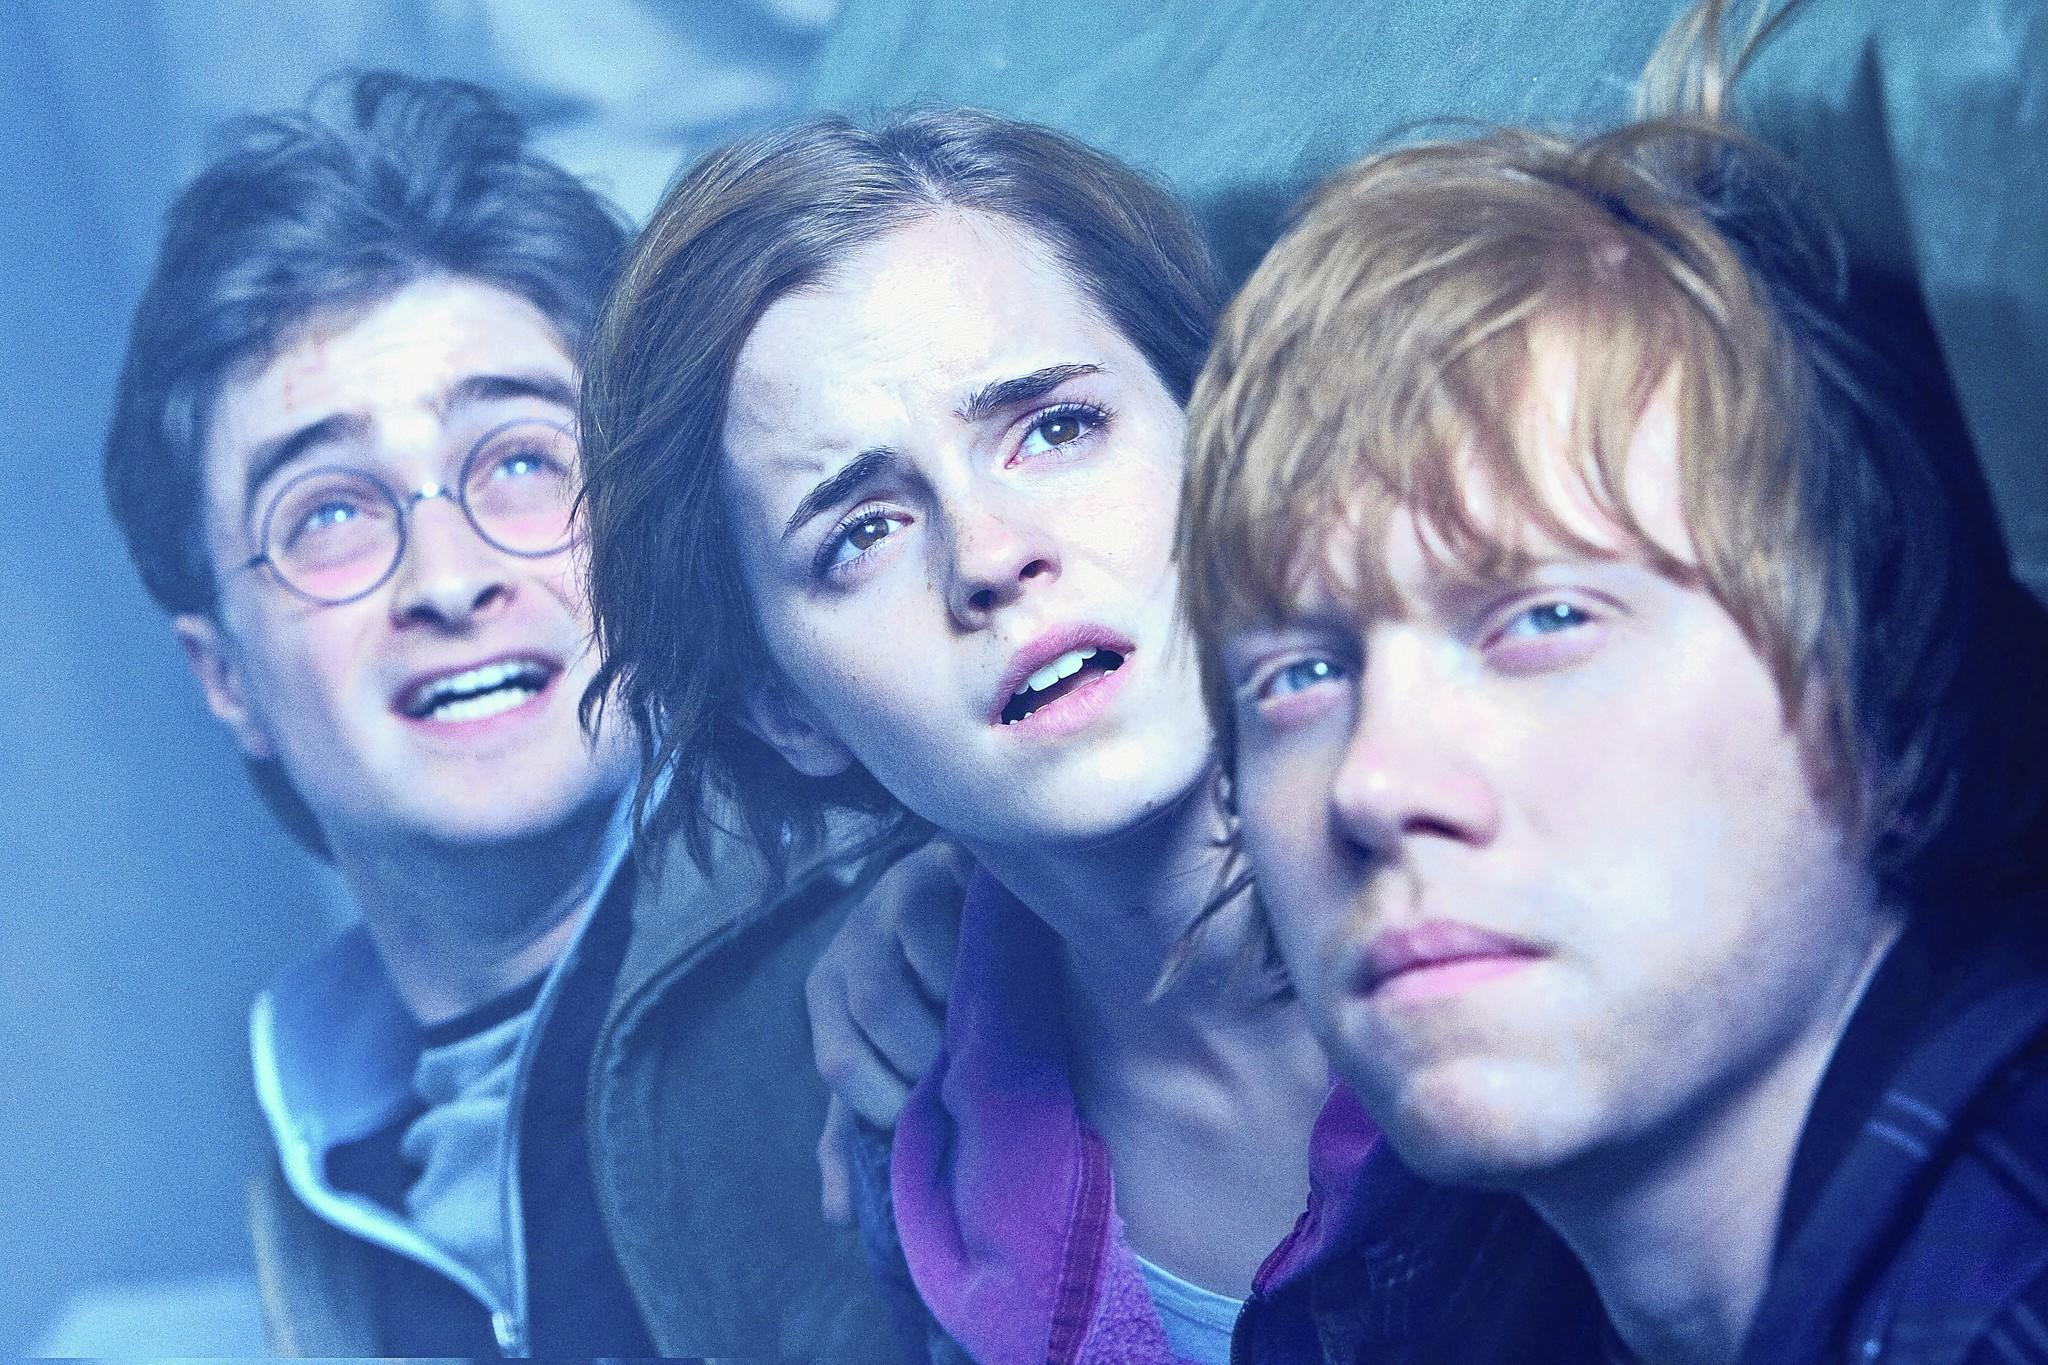 The Biblioracle would like to see J.K. Rowling rewrite her Harry Potter books with characters Hermione Granger and Harry Potter as a couple instead of Hermione and Ron Weasley.